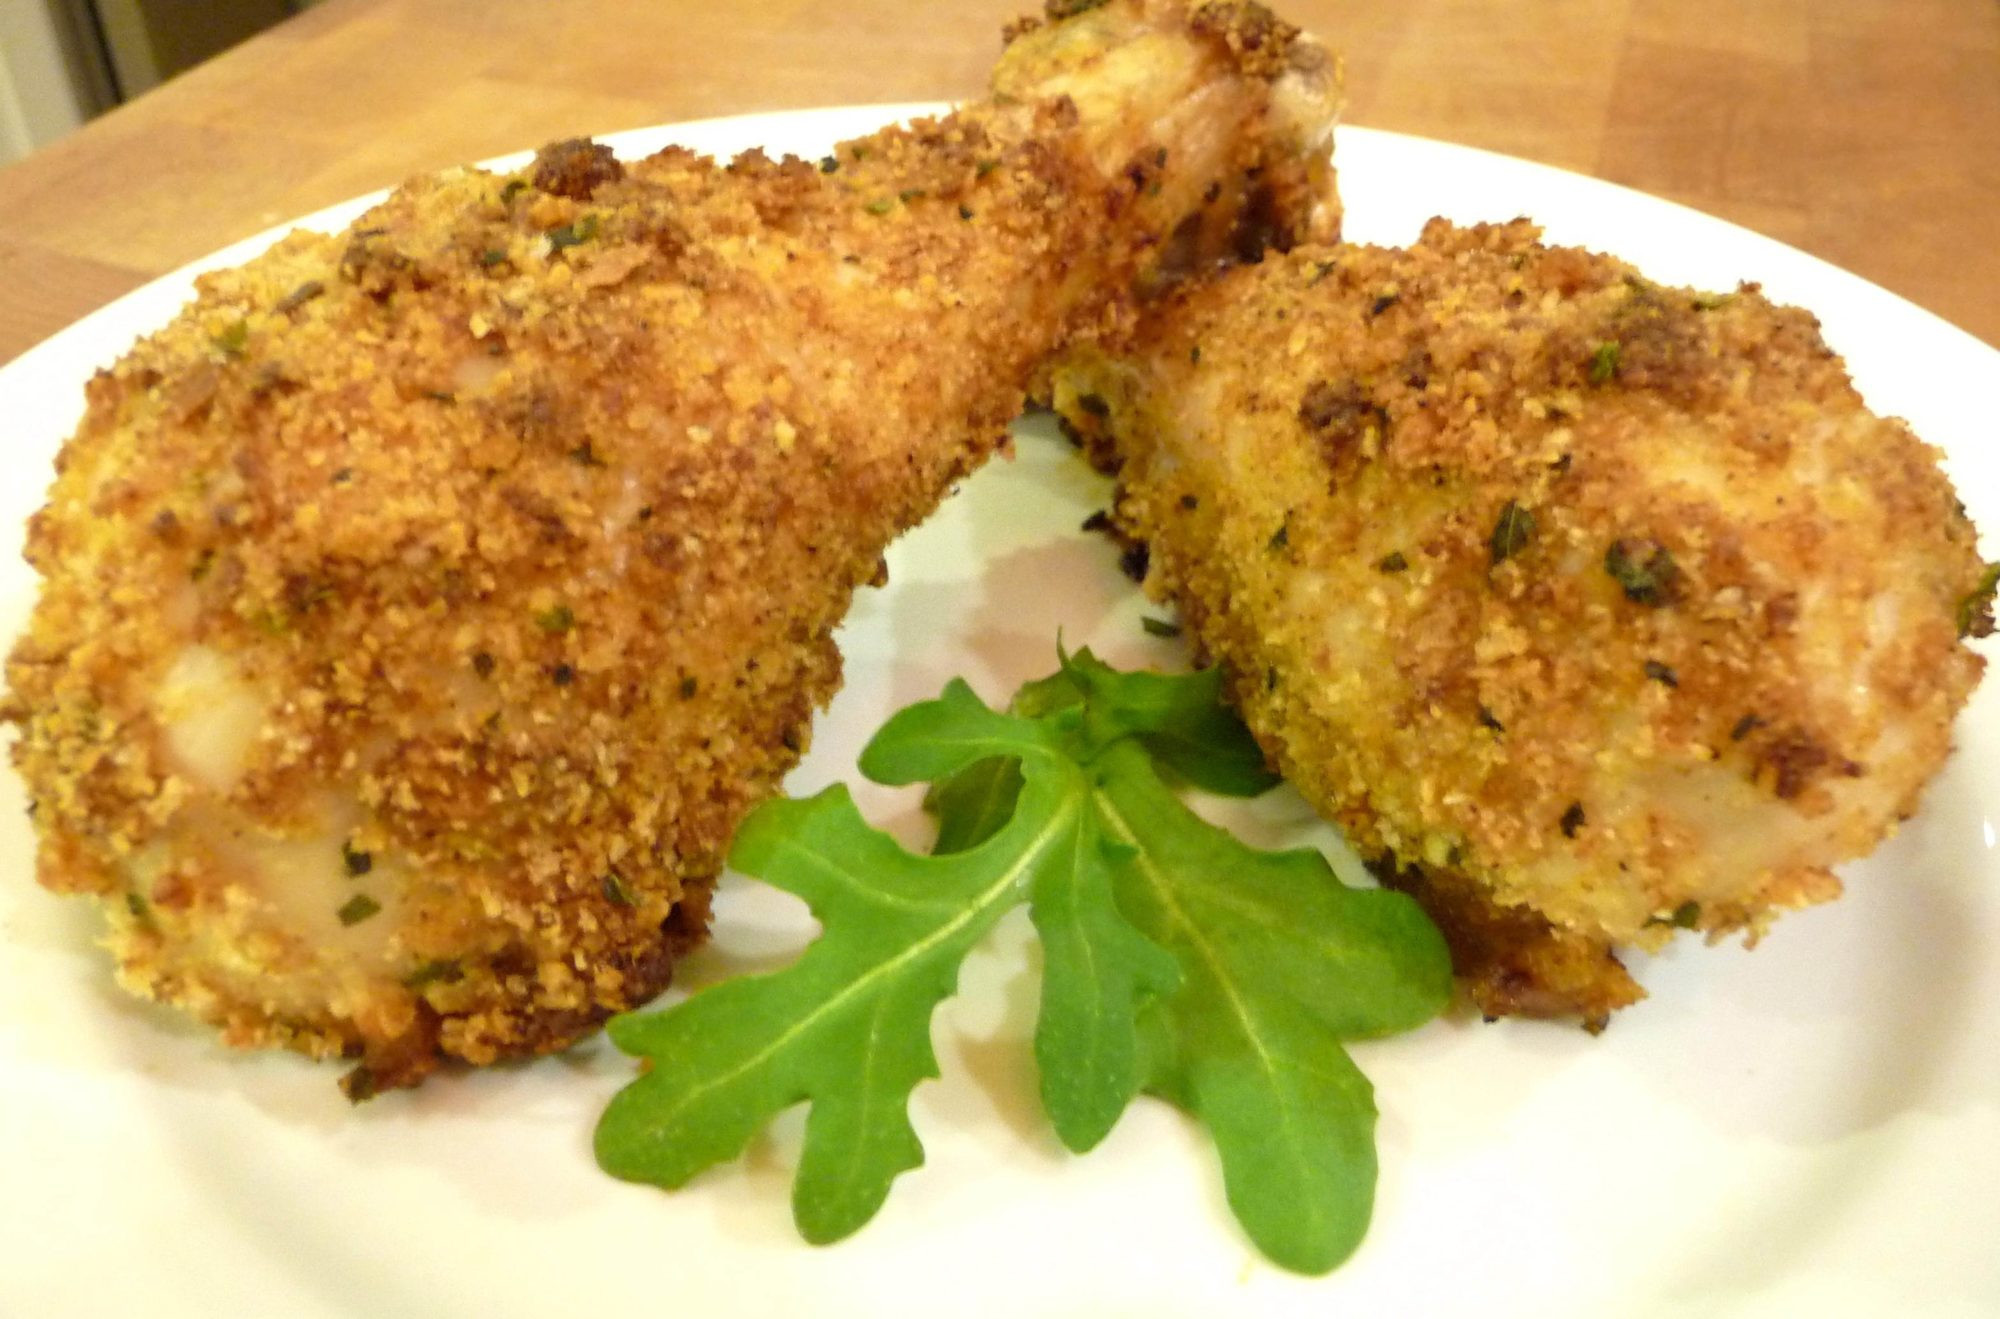 Baked Fried Chicken  Oven Baked Fried Chicken GF Option The Nourishing Home